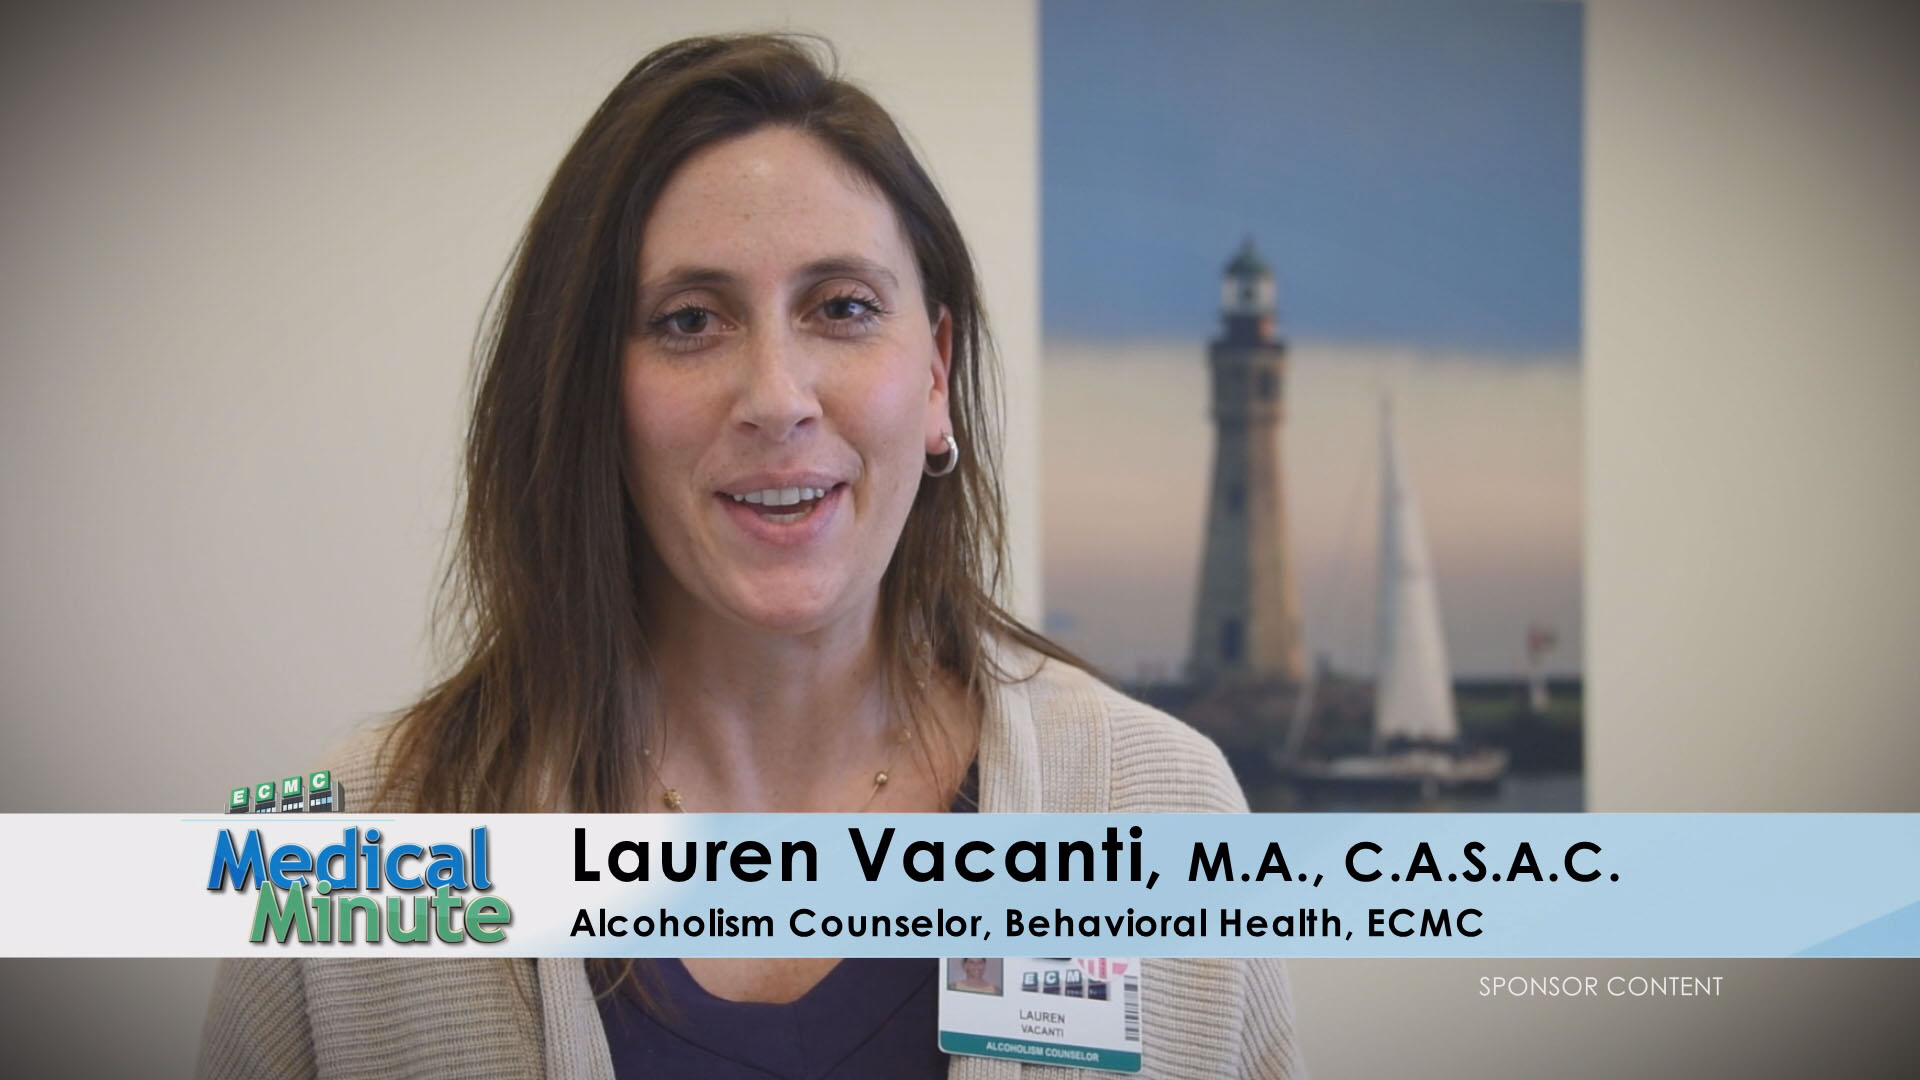 ECMC Medical Minute LaurenVacanti ChemicalDependency 05.29.17 STILL